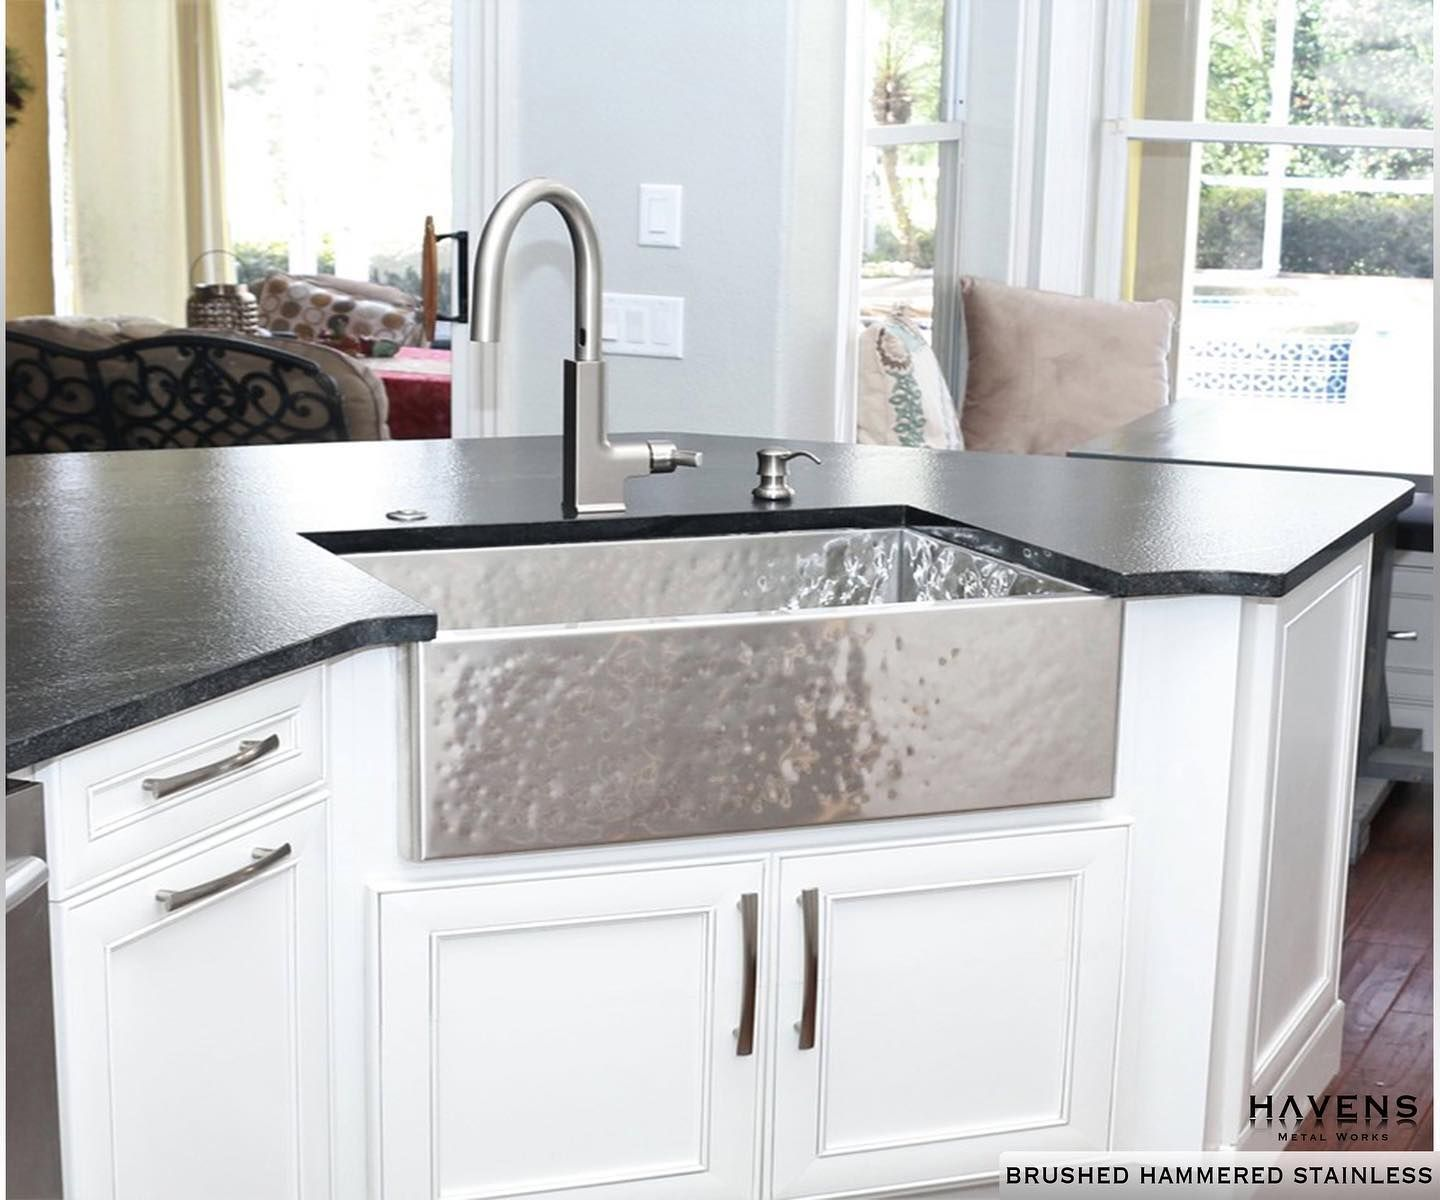 The Heritage Sink In Brushed Hammered Stainless An Incredible Kitchen Focal Stainless Steel Farmhouse Sink Stainless Farmhouse Sink Stainless Steel Farm Sink